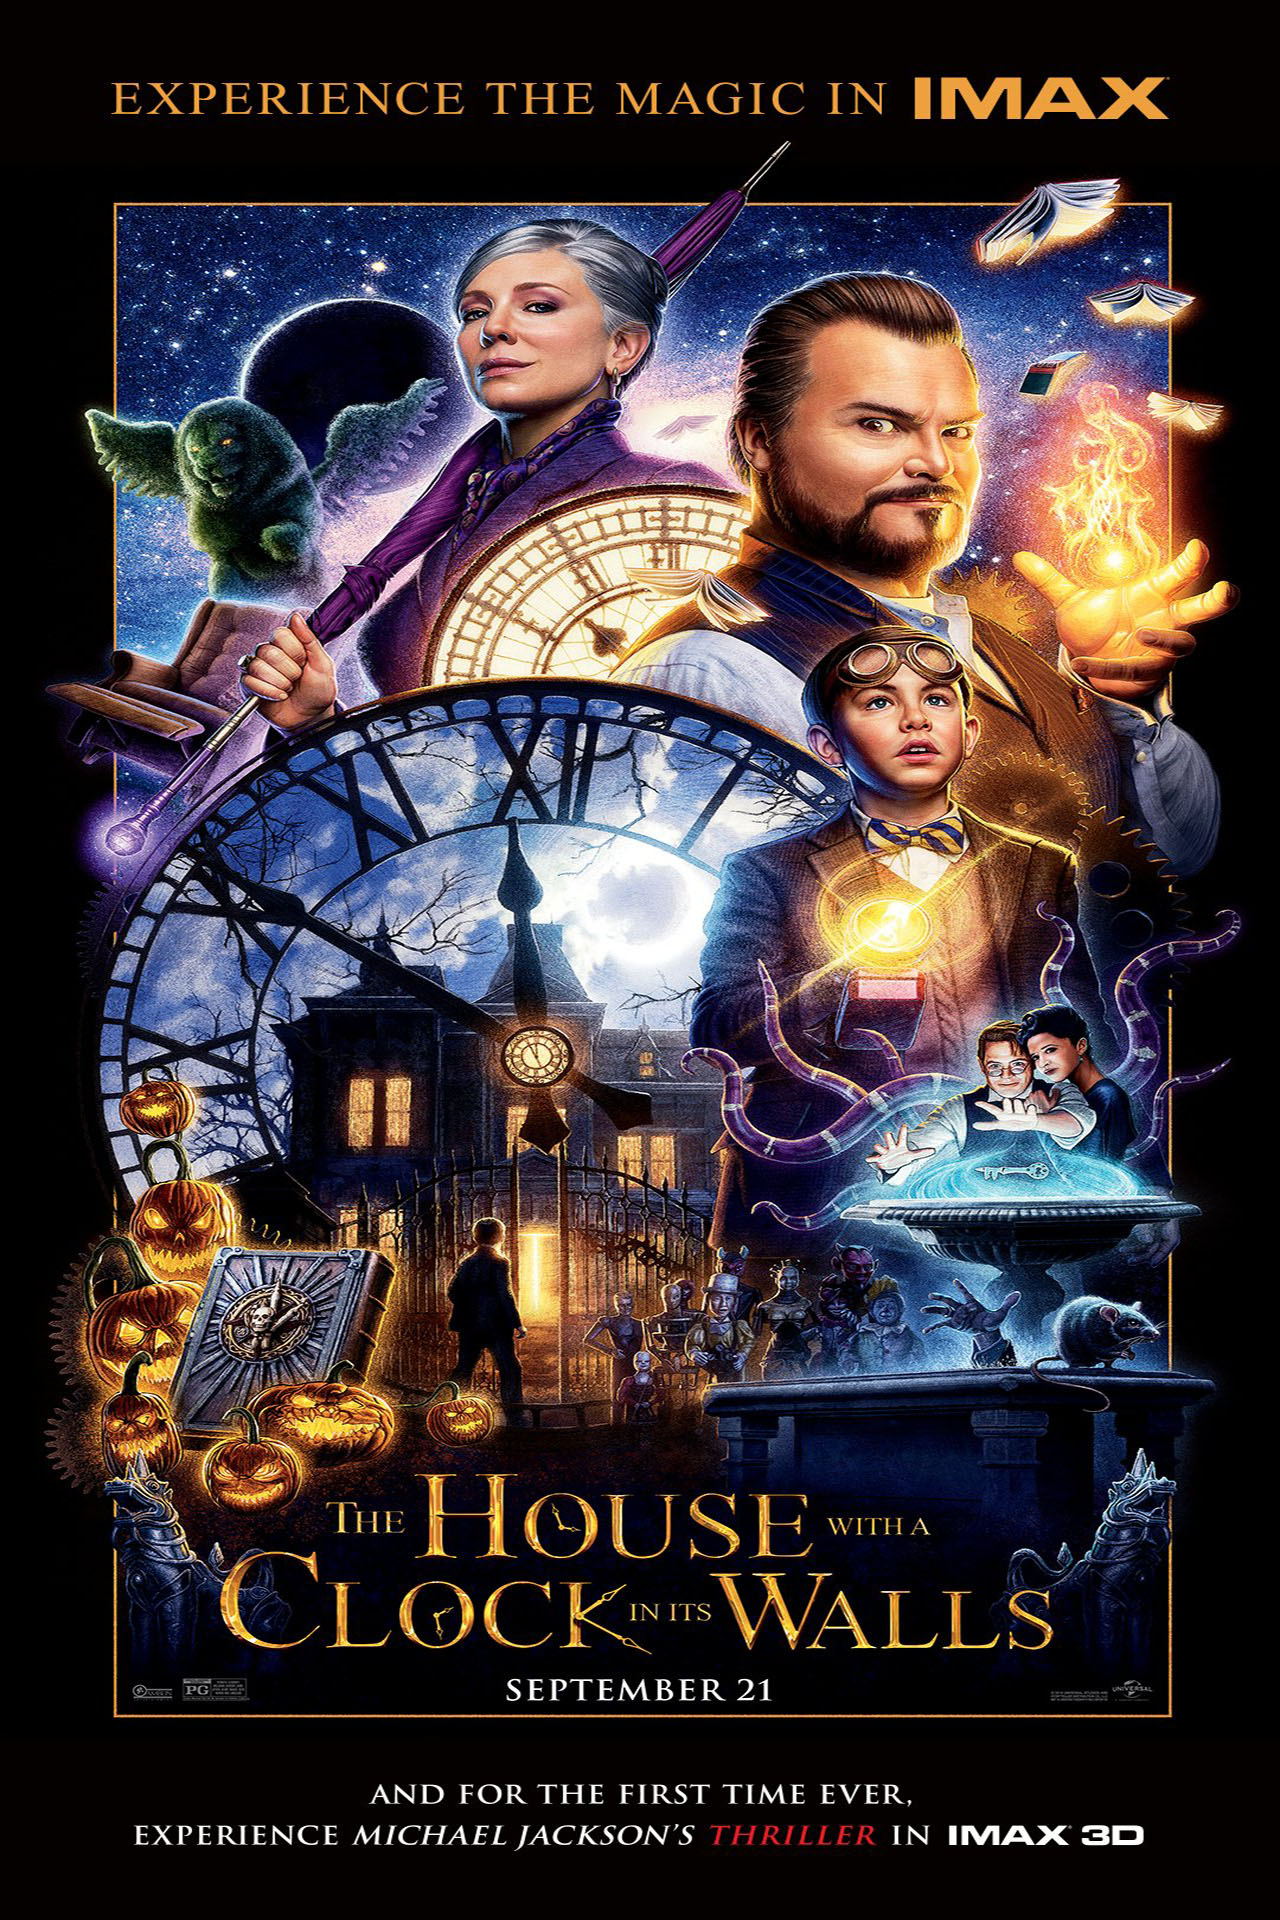 Poster for The House With a Clock In Its Walls (w/ Michael Jackson's Thriller): IMAX